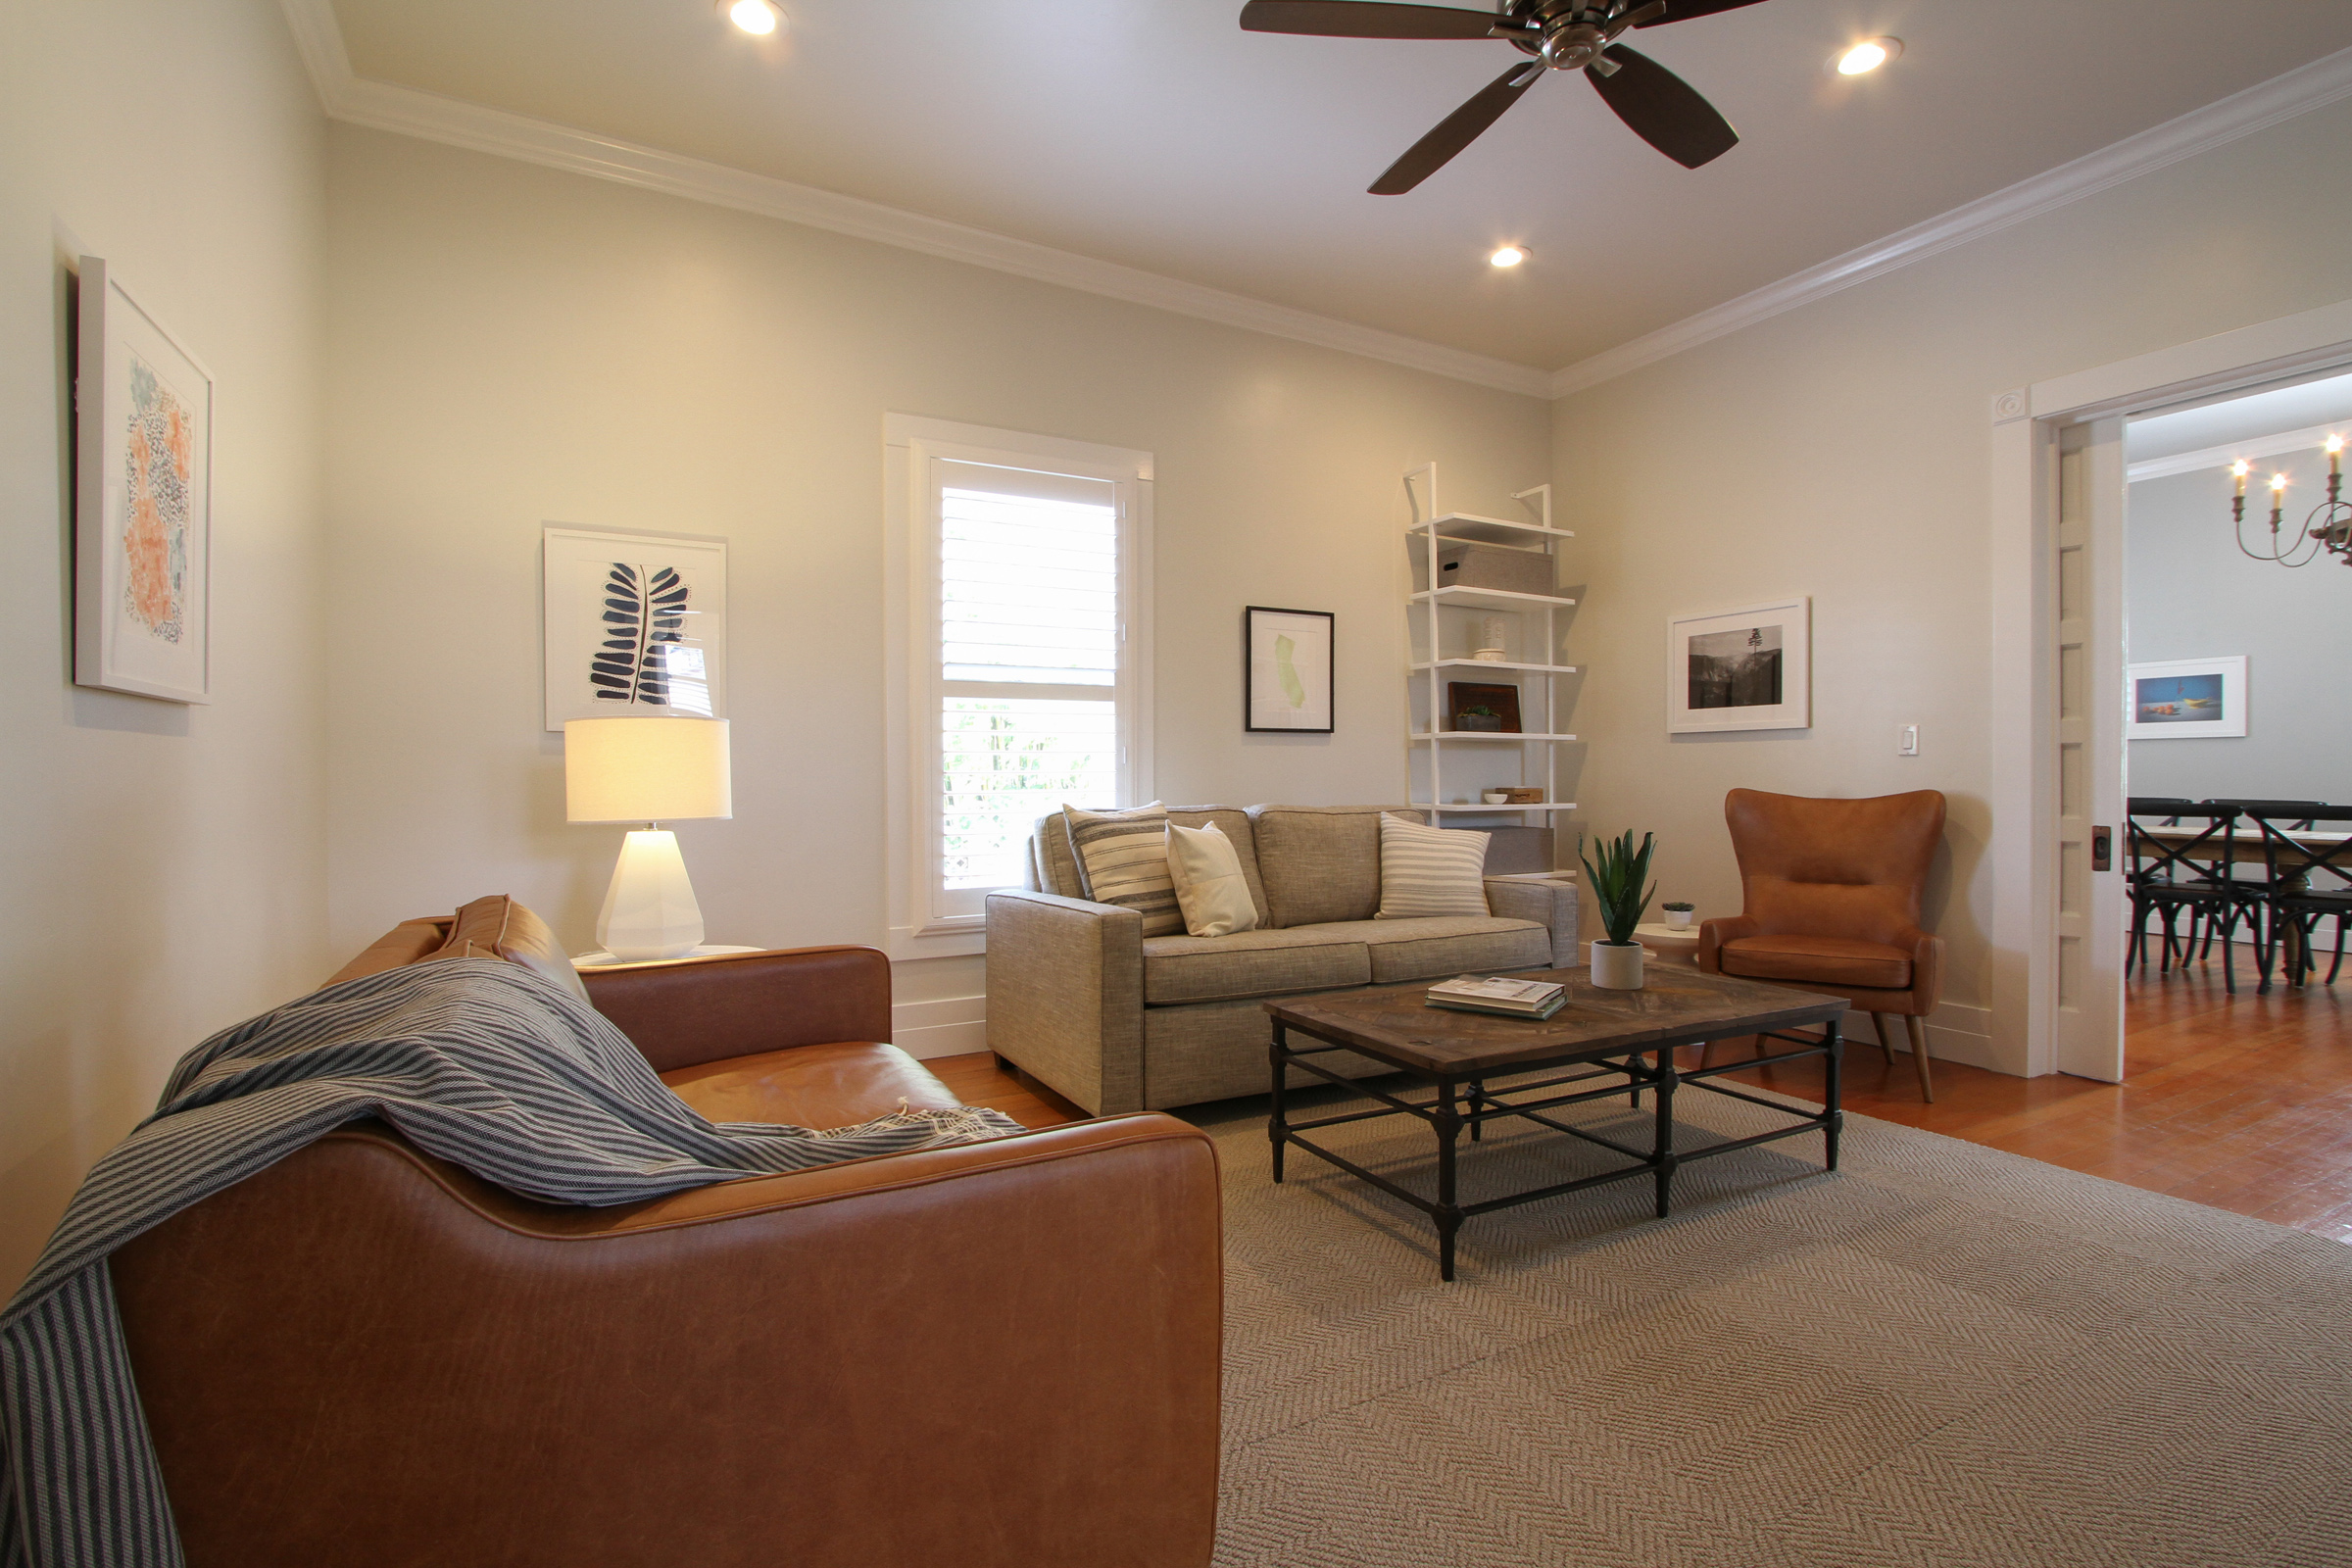 The living room is furnished with a sofa bed.